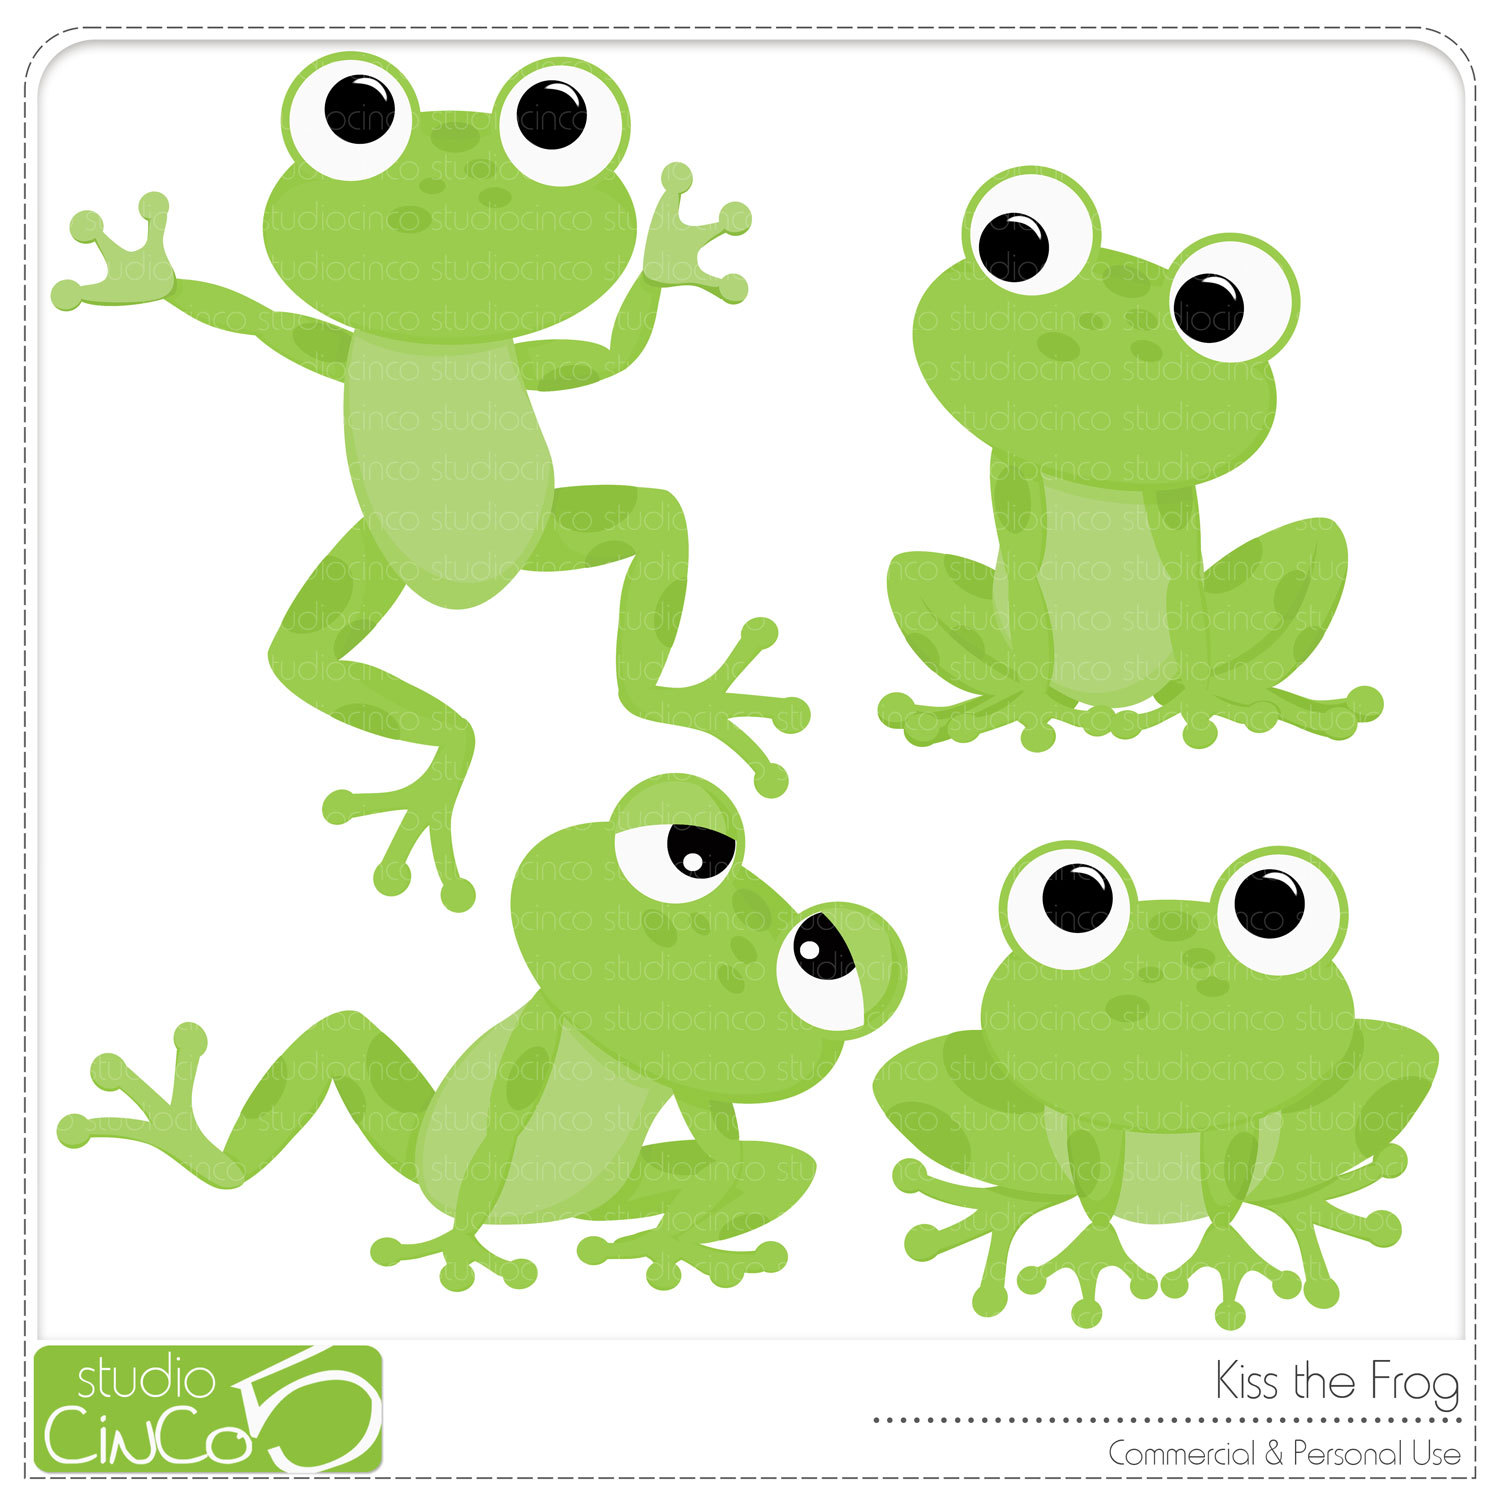 Frog Clipart Cute Bookmarks Add Favorite-Frog Clipart Cute Bookmarks Add Favorites About Pictures-10